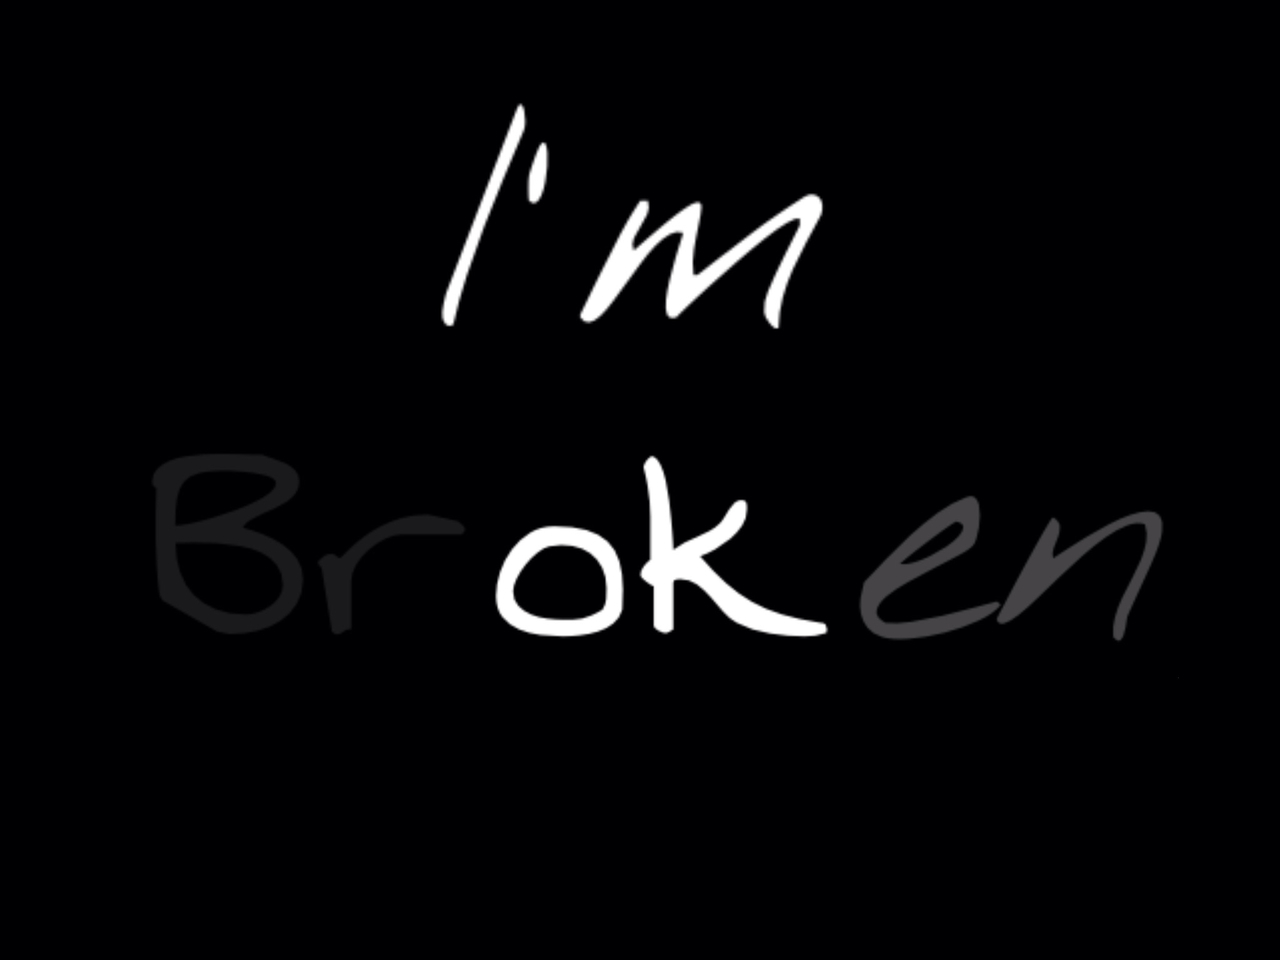 I'm brOKen shared by Emma Huijgen on We Heart It